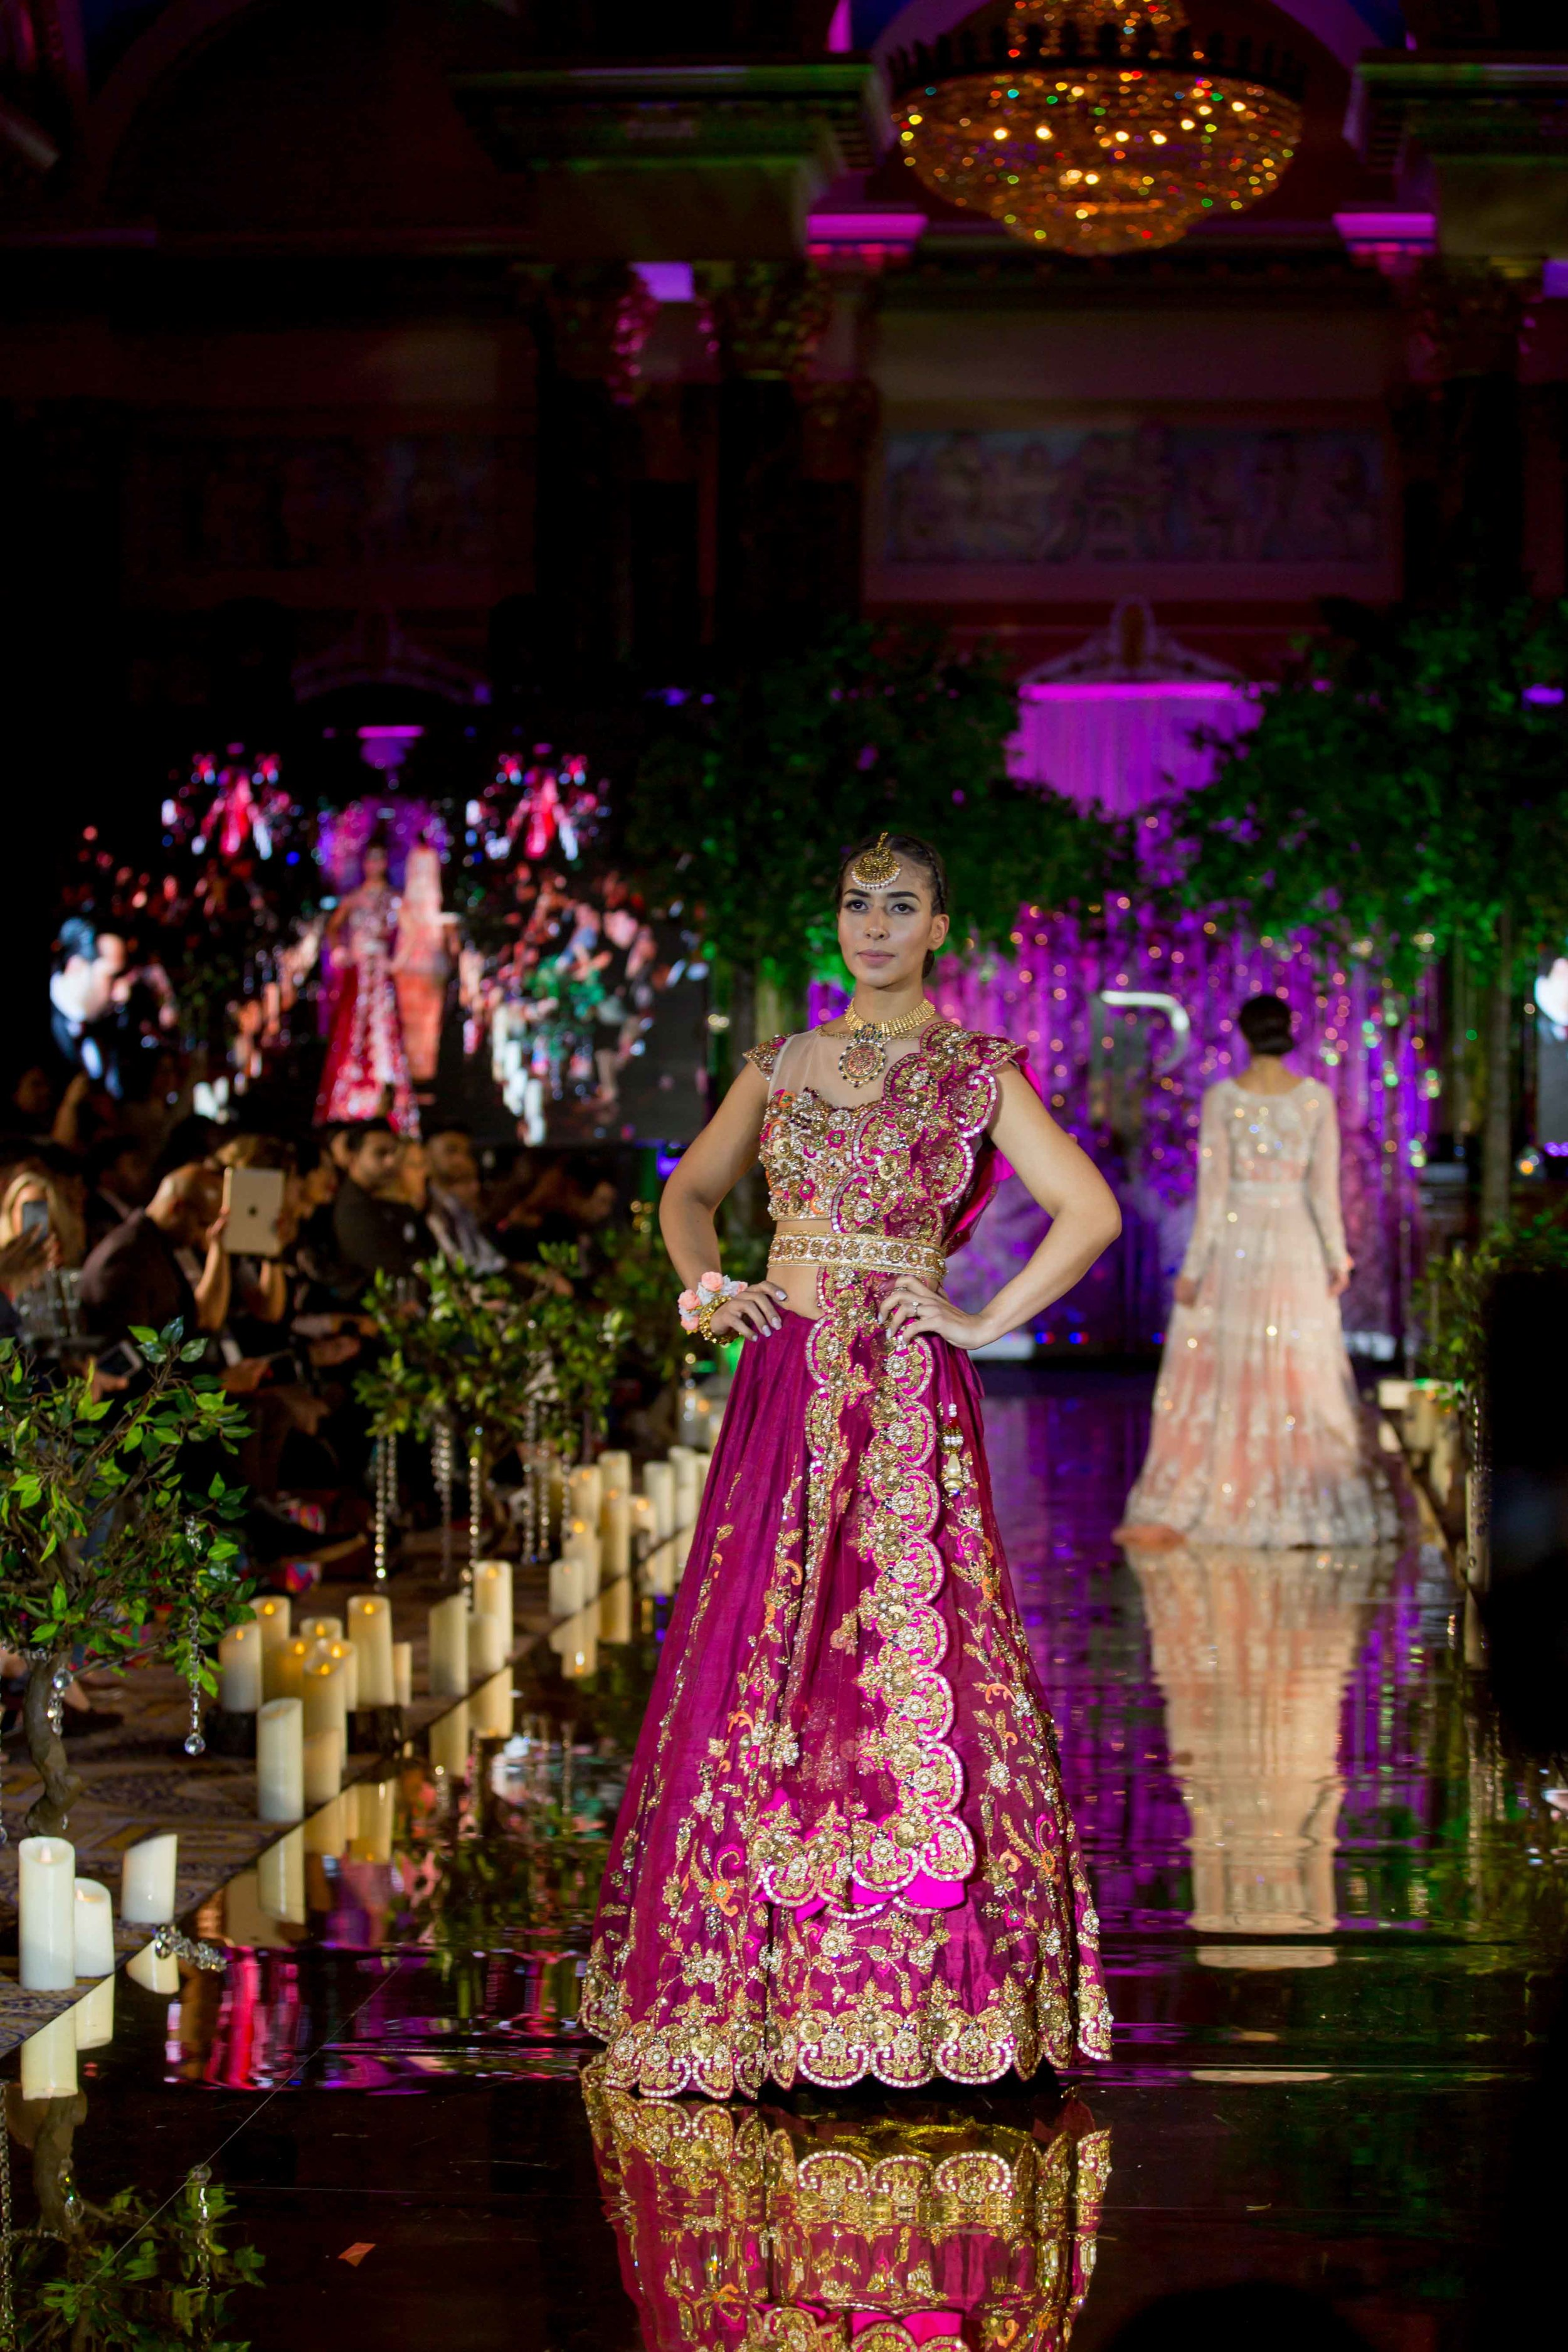 IPLF-IPL-Indian-Pakistani-London-Fashion-London-Week-catwalk-photographer-natalia-smith-photography-ekta-solanki-40.jpg